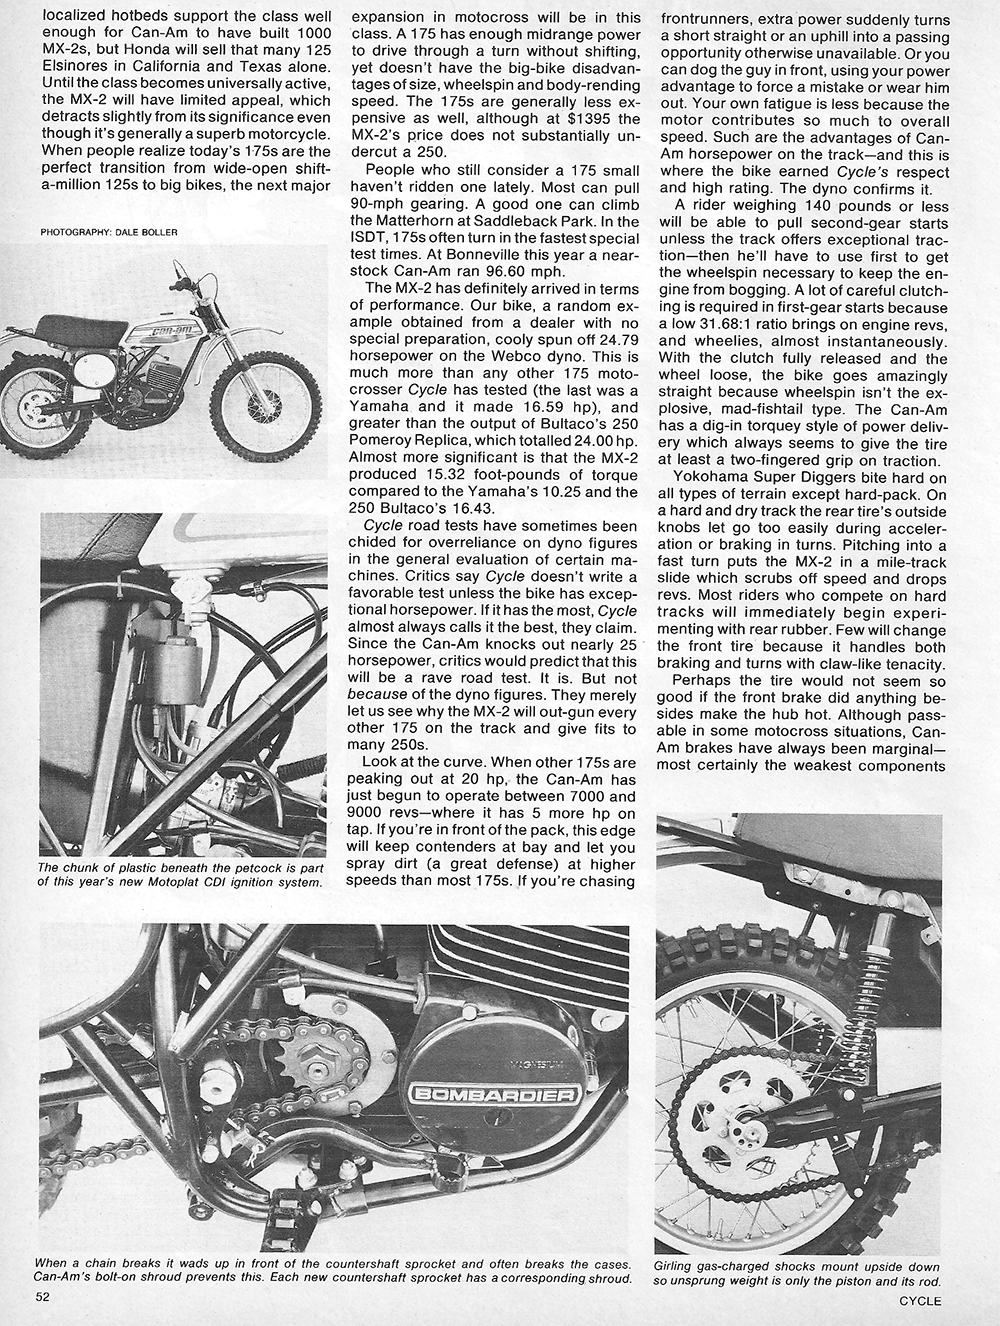 1975 Can Am 175 MX2 road test 3.png